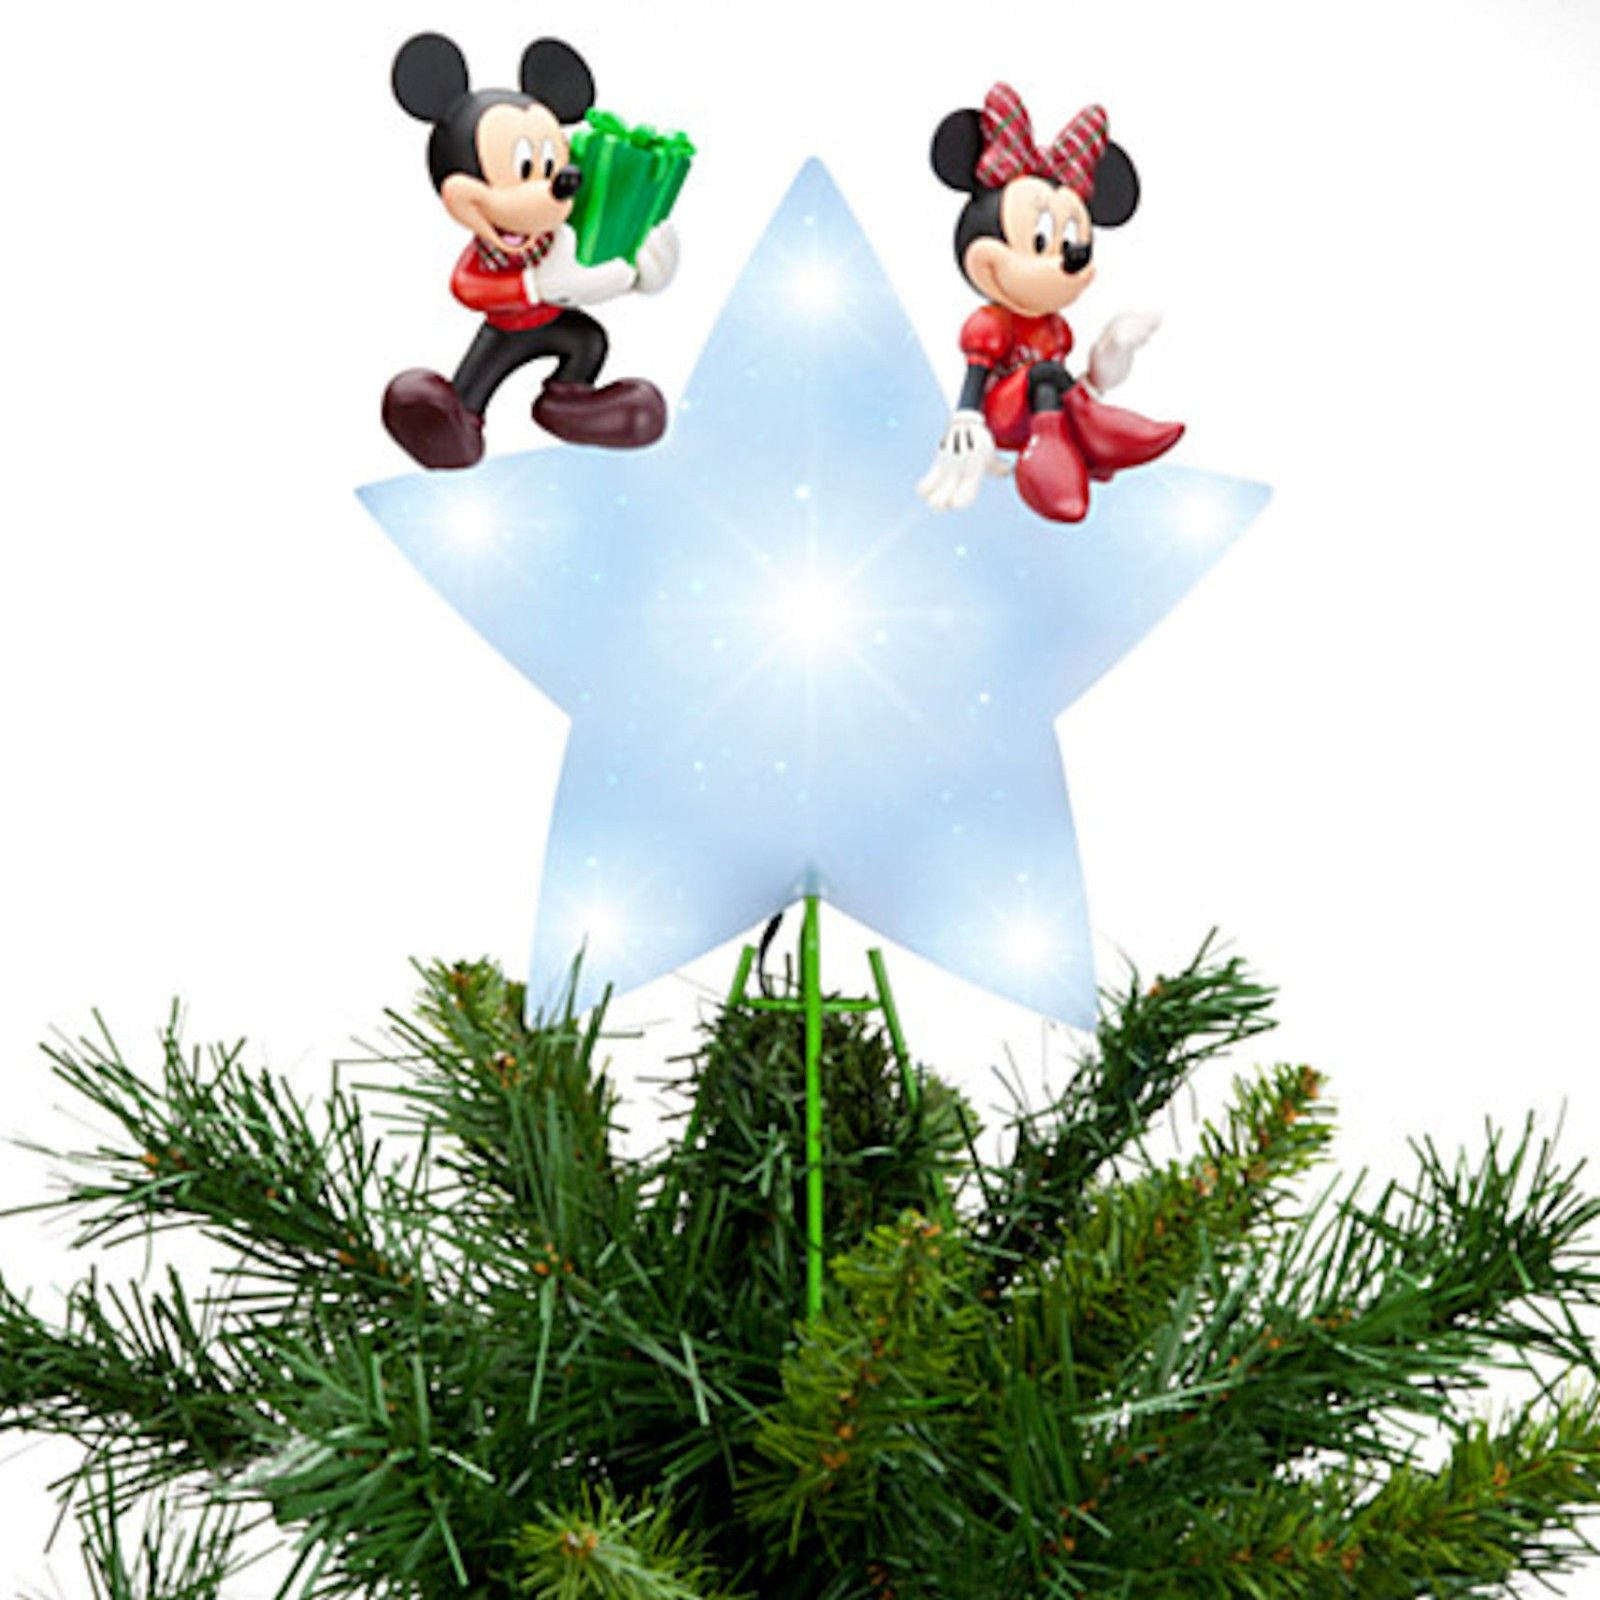 DISNEY STORE MICKEY & MINNIE MOUSE Lighted CHRISTMAS HOLIDAYS TREE TOPPER New In Box